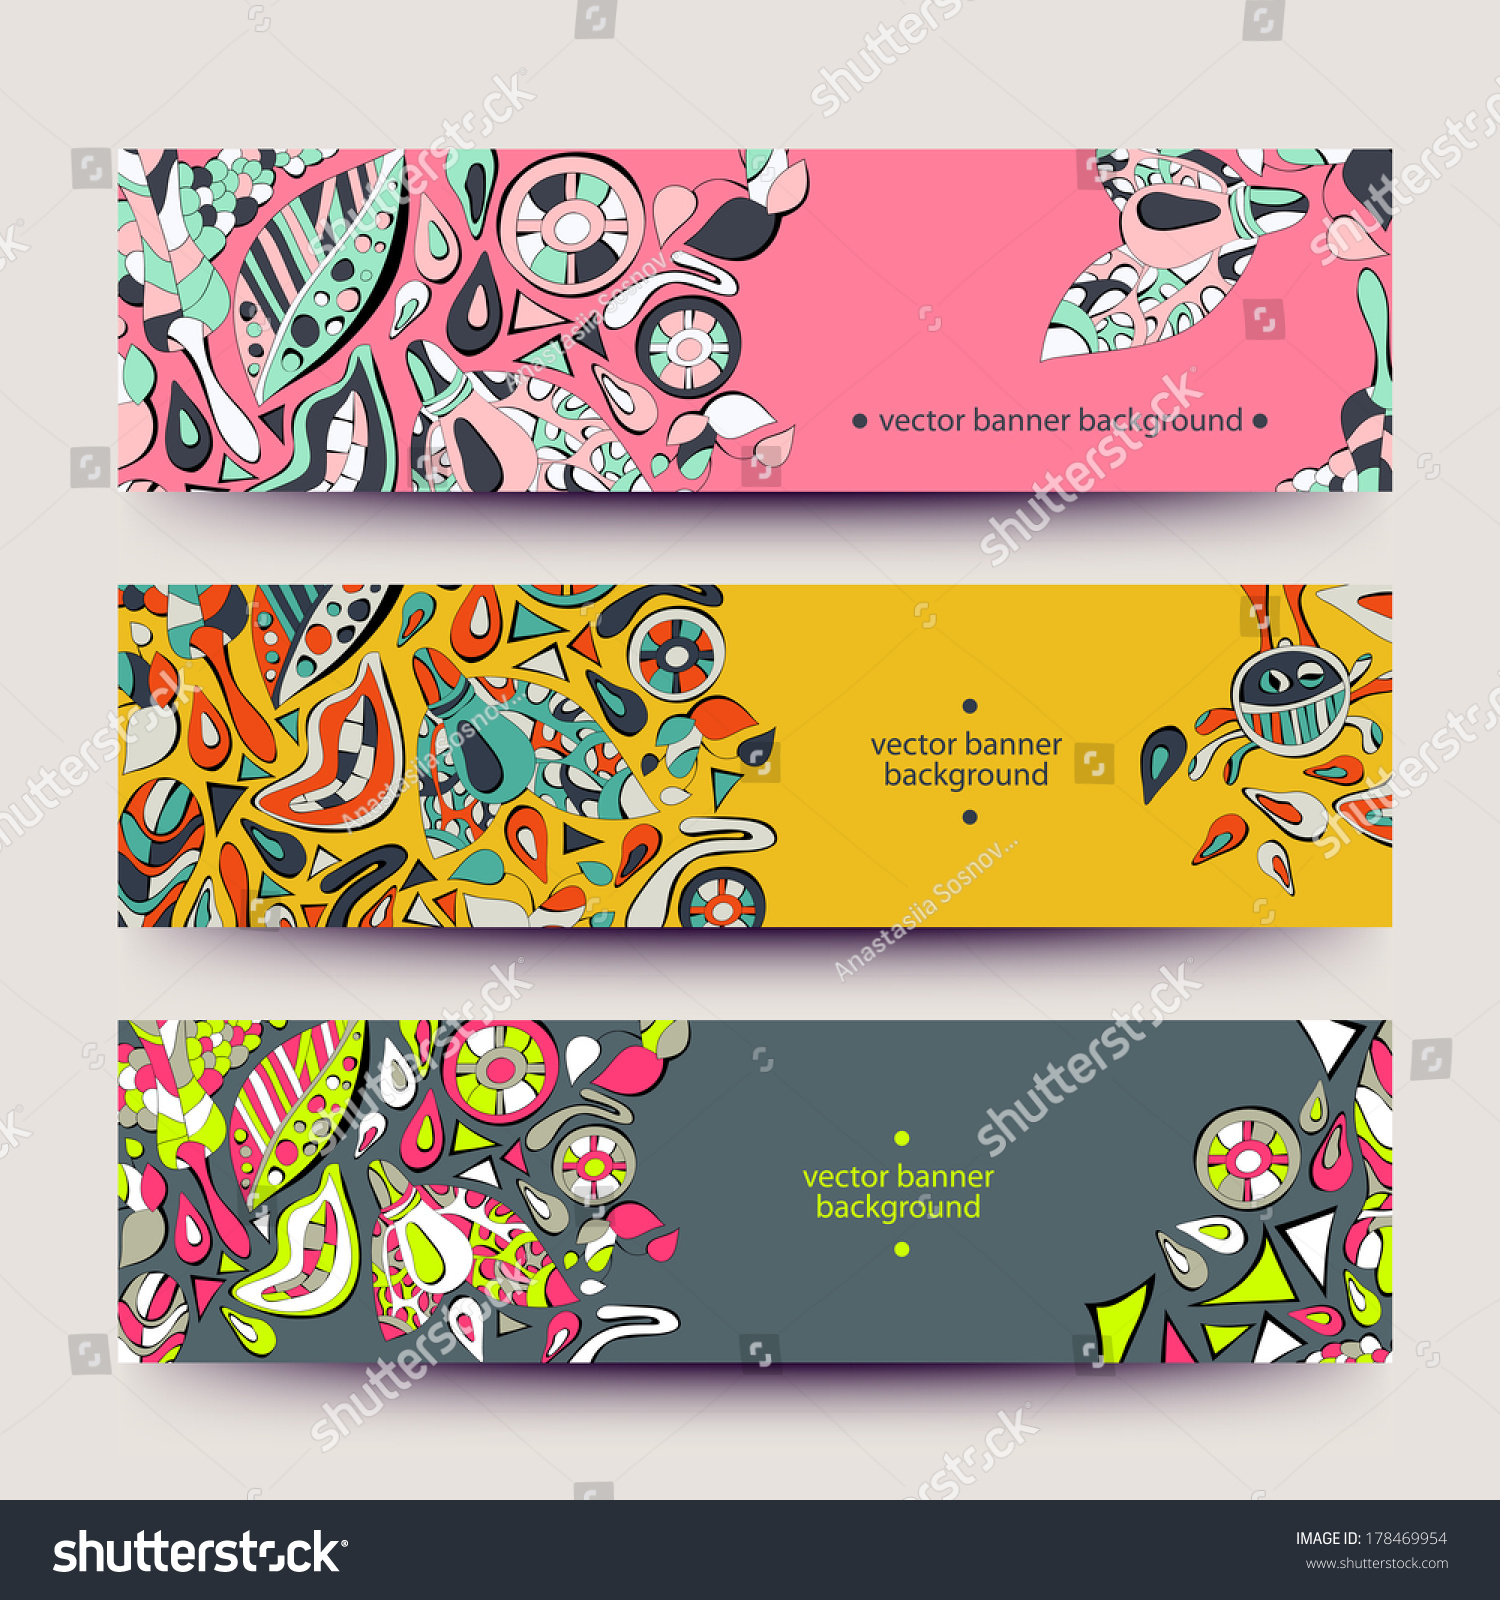 Banners business cards labels tags unique stock vector 178469954 banners for business cards labels tags unique design and interesting solutions hand magicingreecefo Gallery